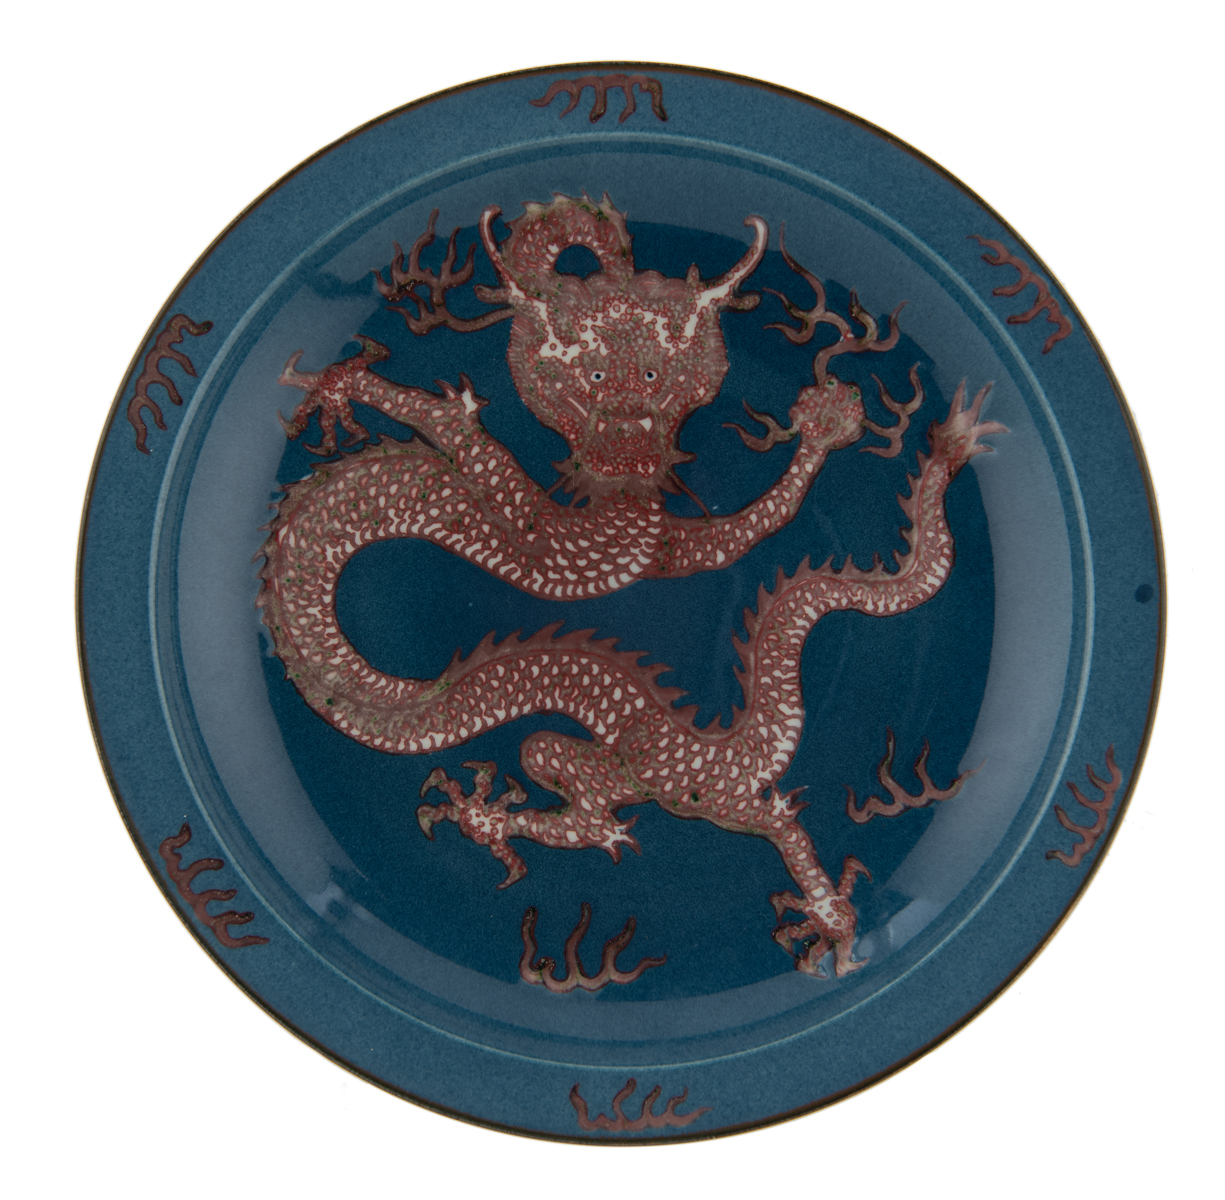 Lot 34 - A Chinese bleu poudré and copper red charger, the well decorated with a five clawed dragon amongst